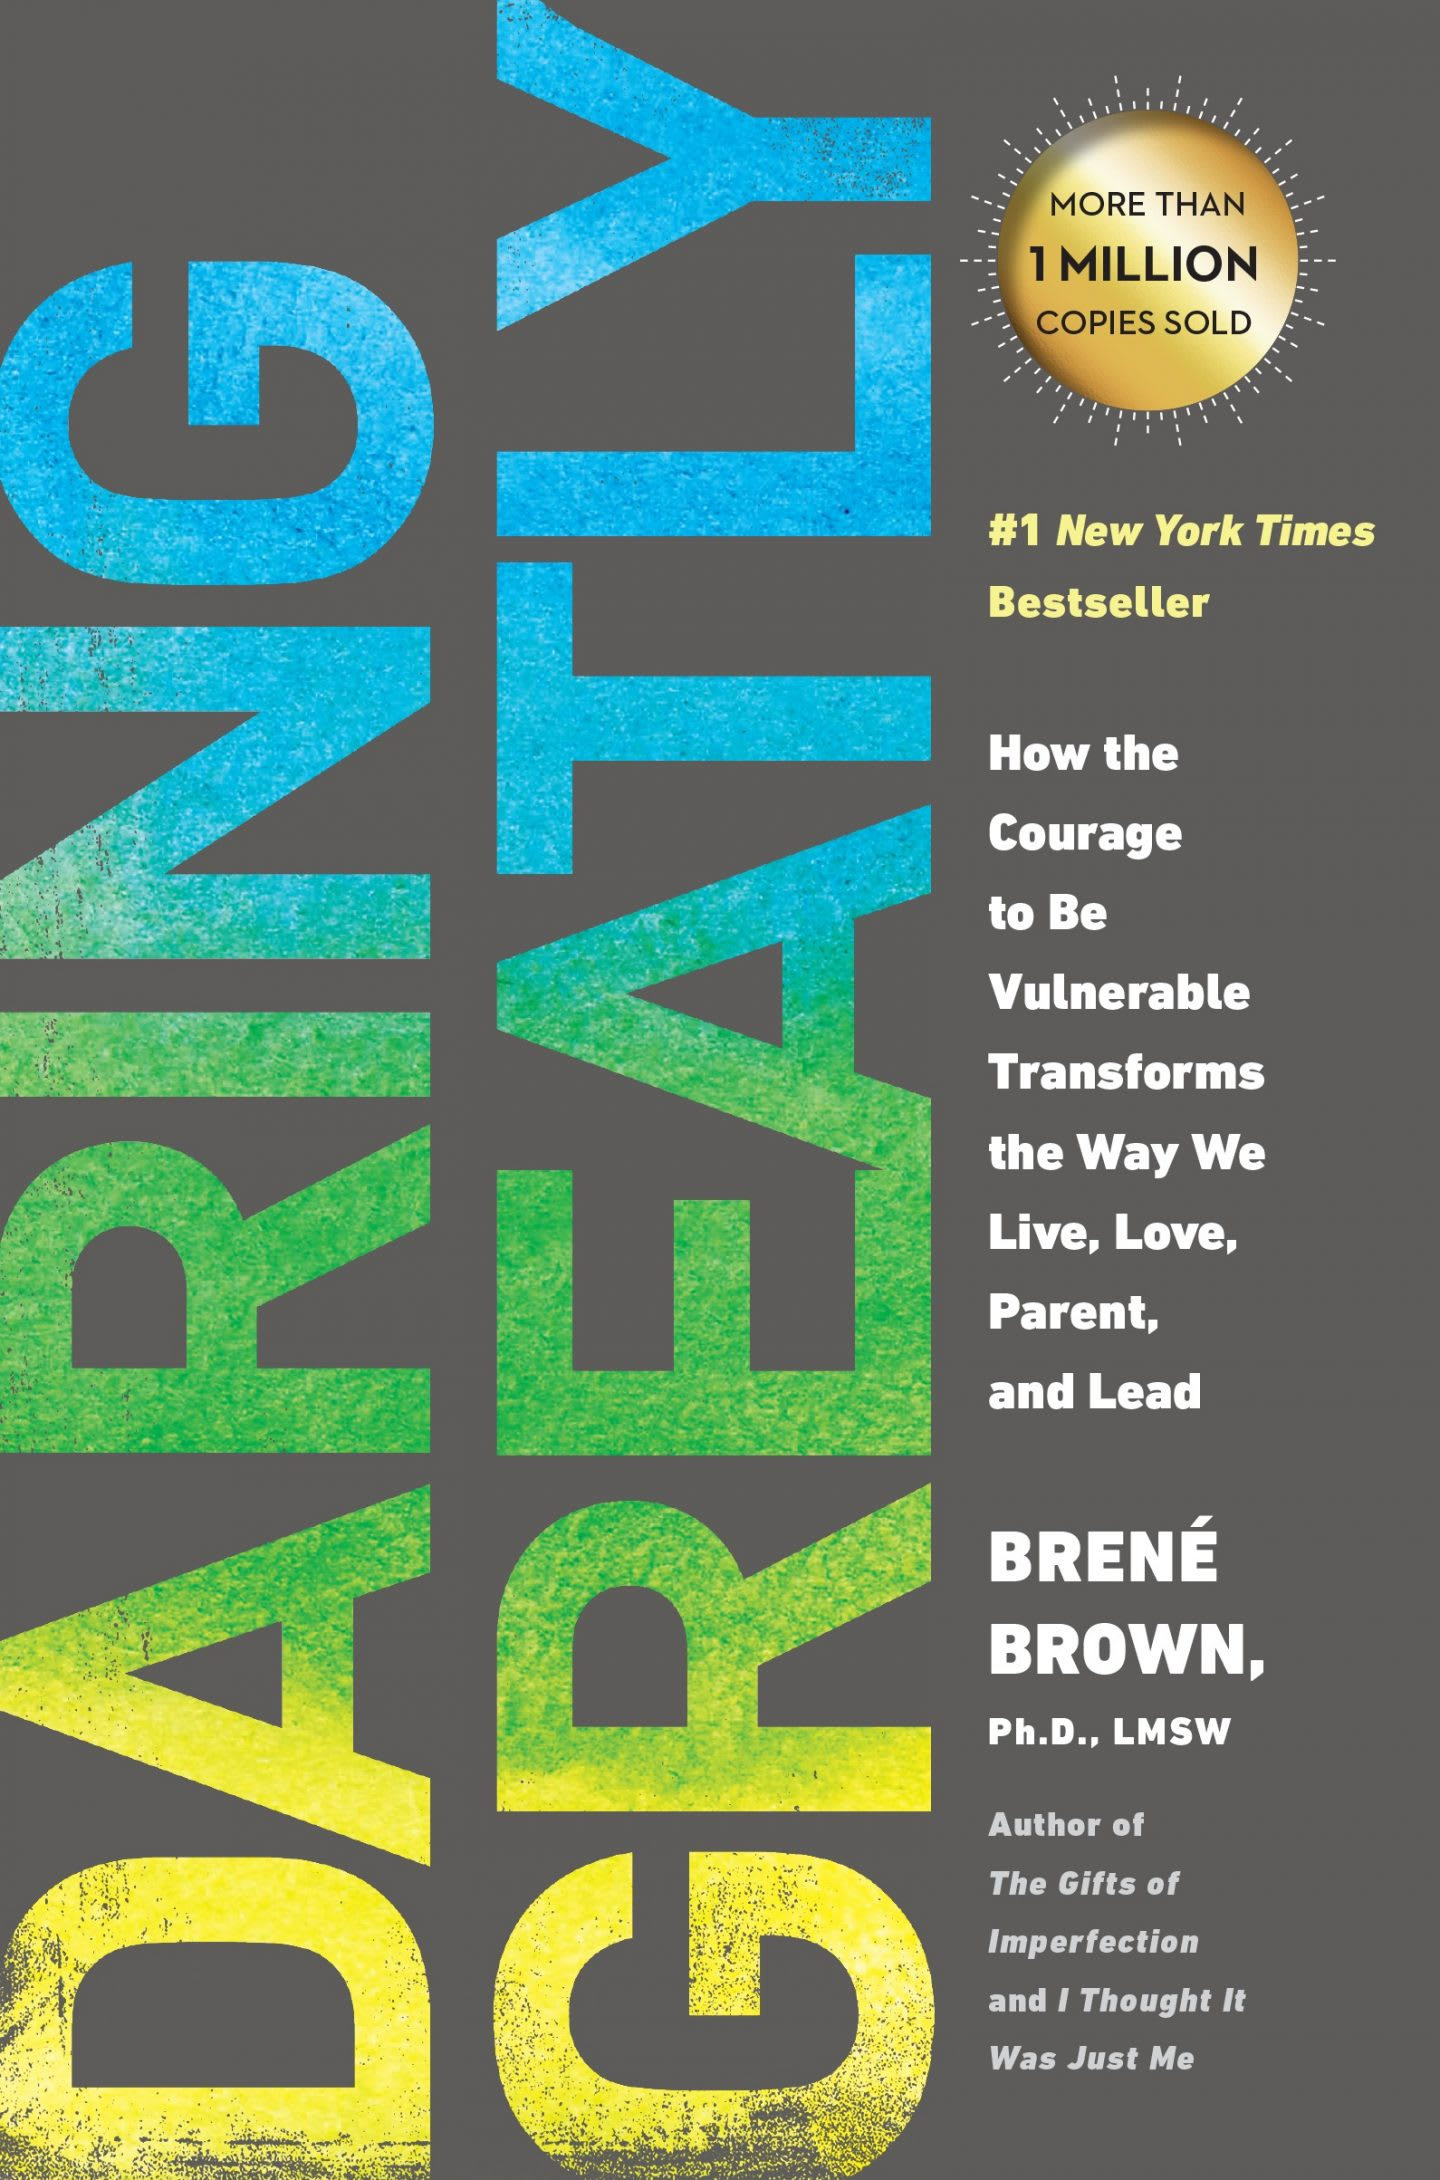 daring-greatly-research-vulnerability-workplace-sport-inspiring-book